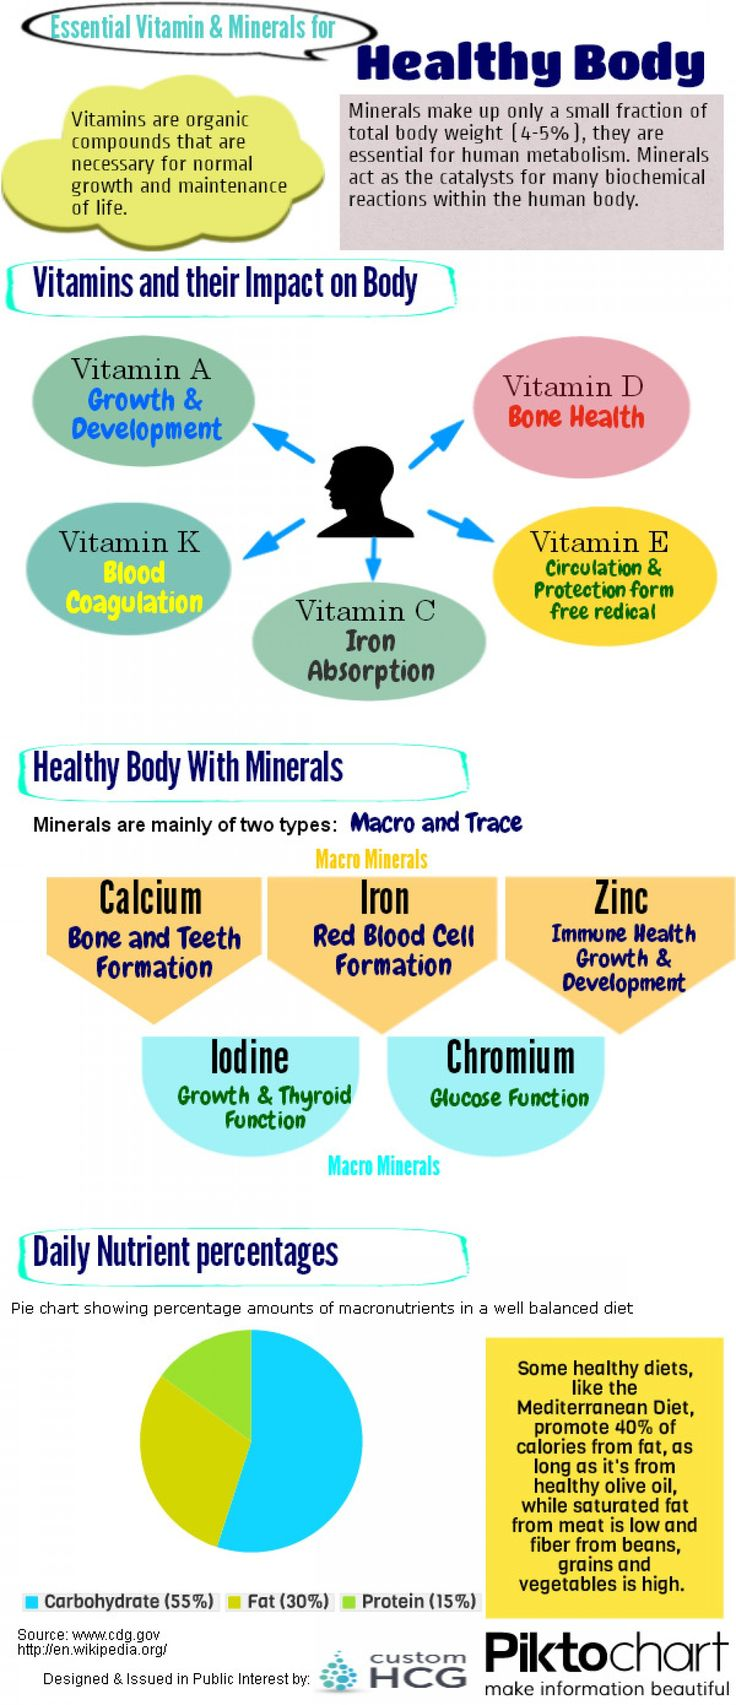 76 best images about Vitamins & Minerals on Pinterest | Vitamin b3 ...